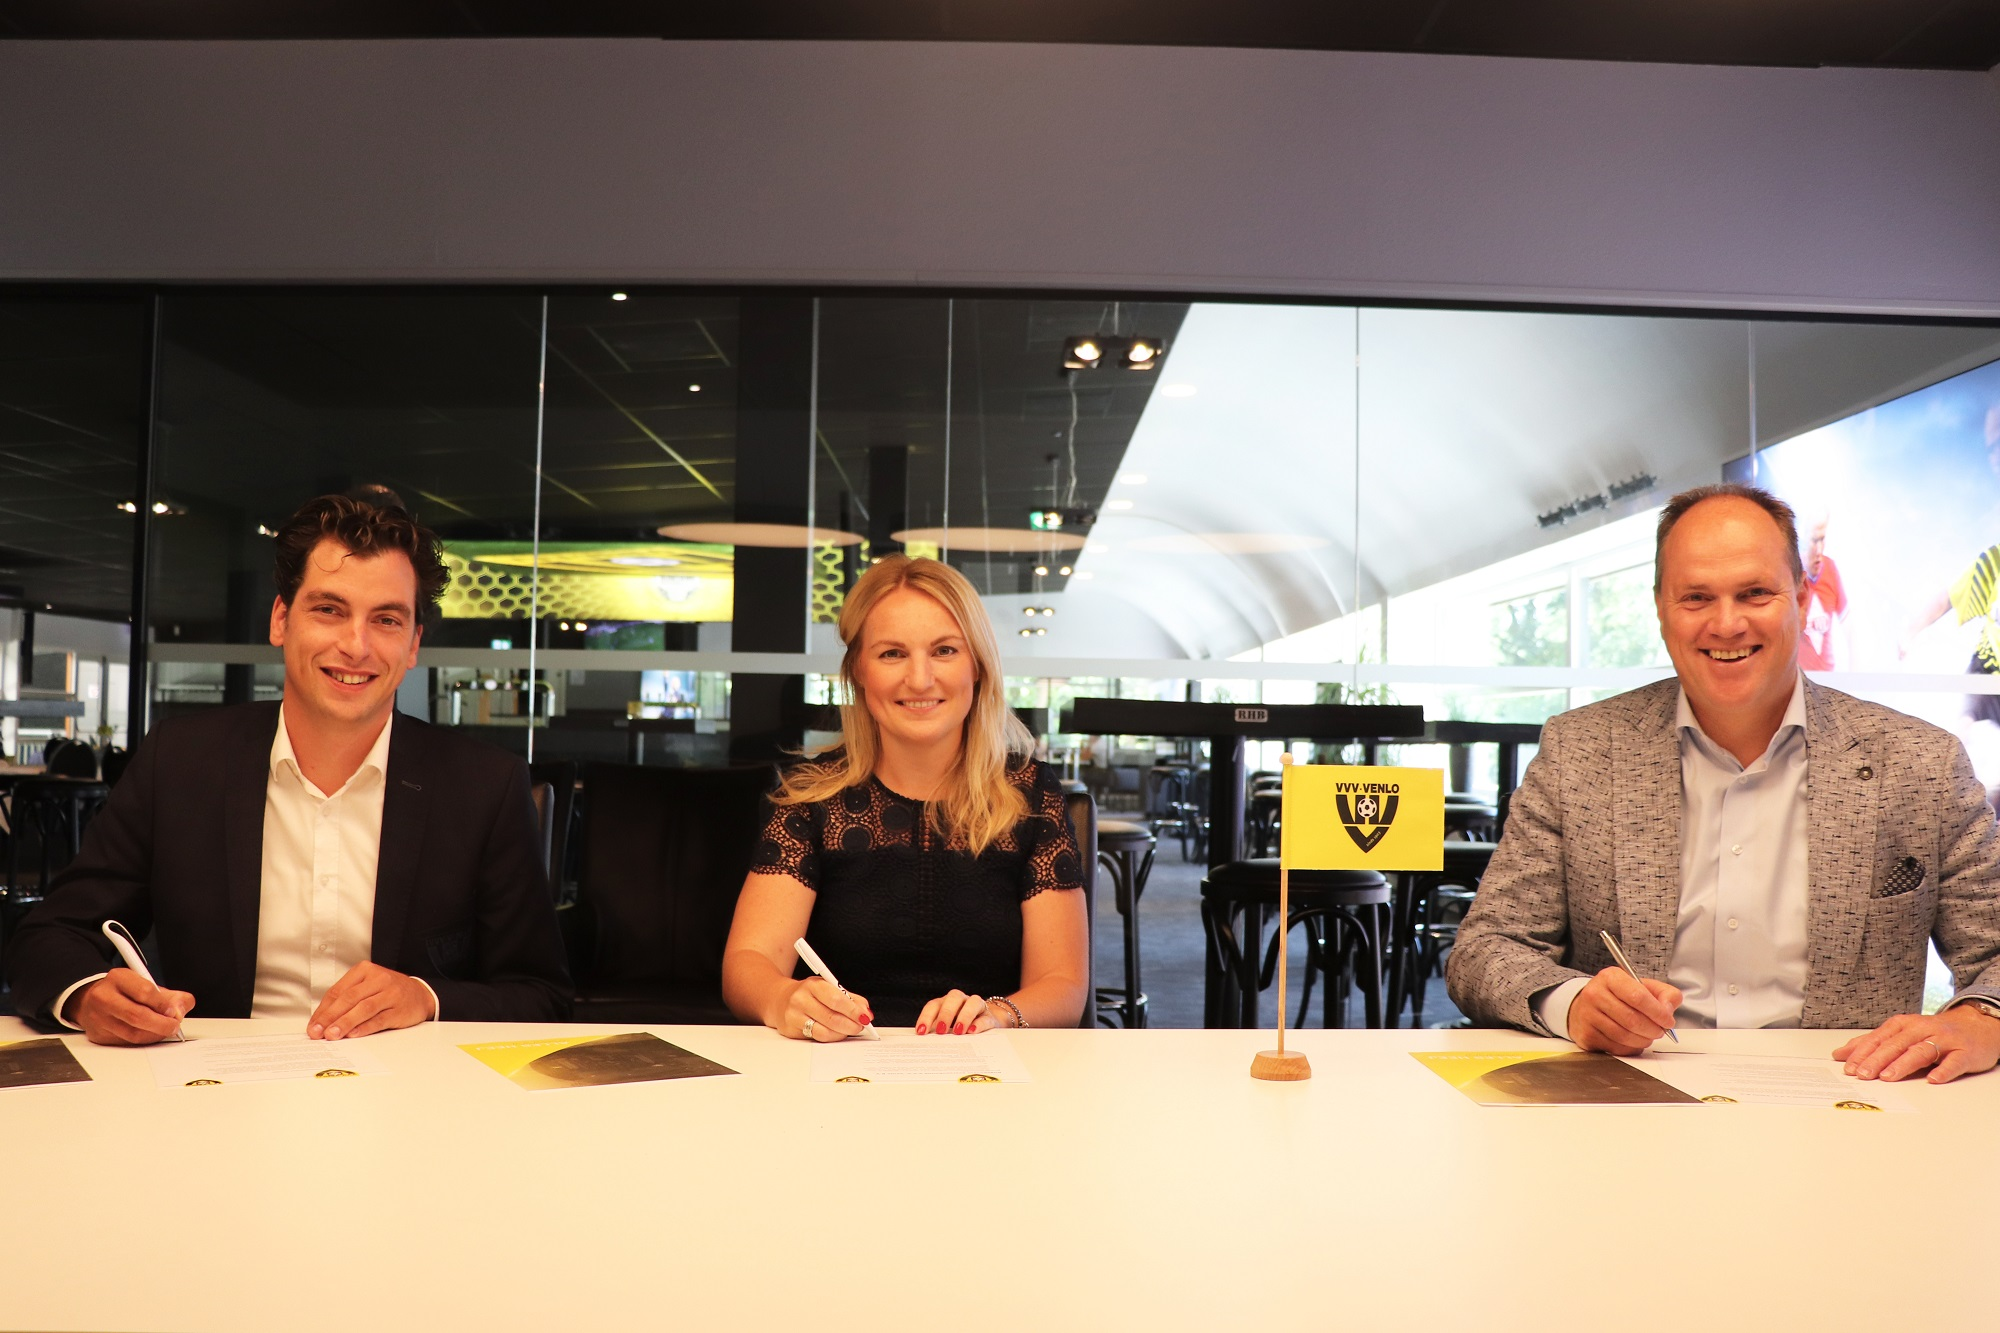 vidaXL.nl will be the new shirt sponsor for VVV-Venlo